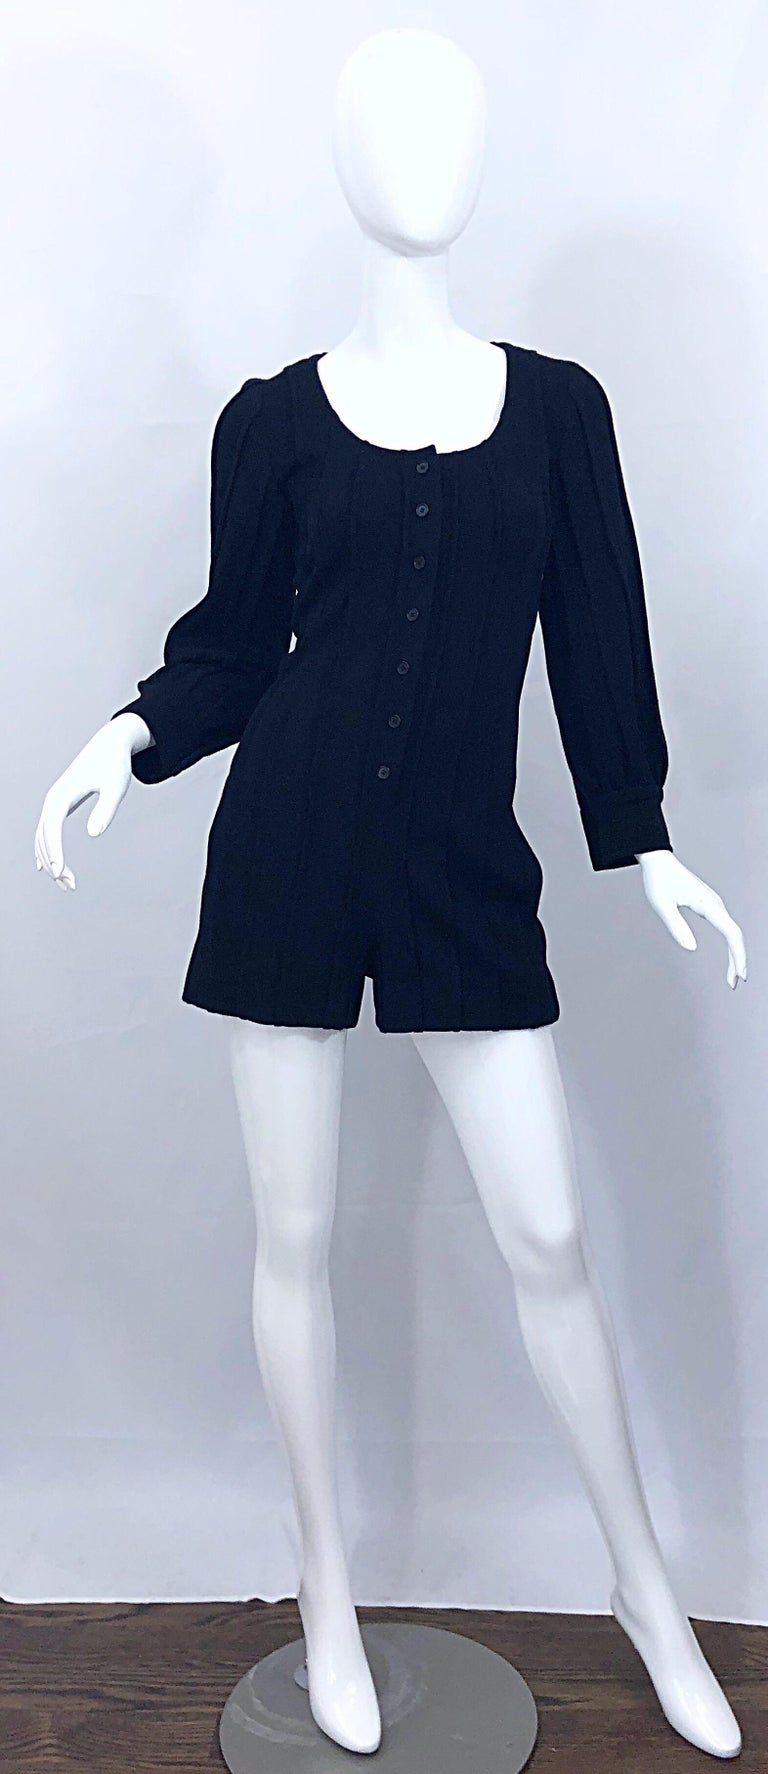 Vintage Givenchy Haute Couture Black Wool Long Sleeve One Piece Romper Jumpsuit For Sale 11